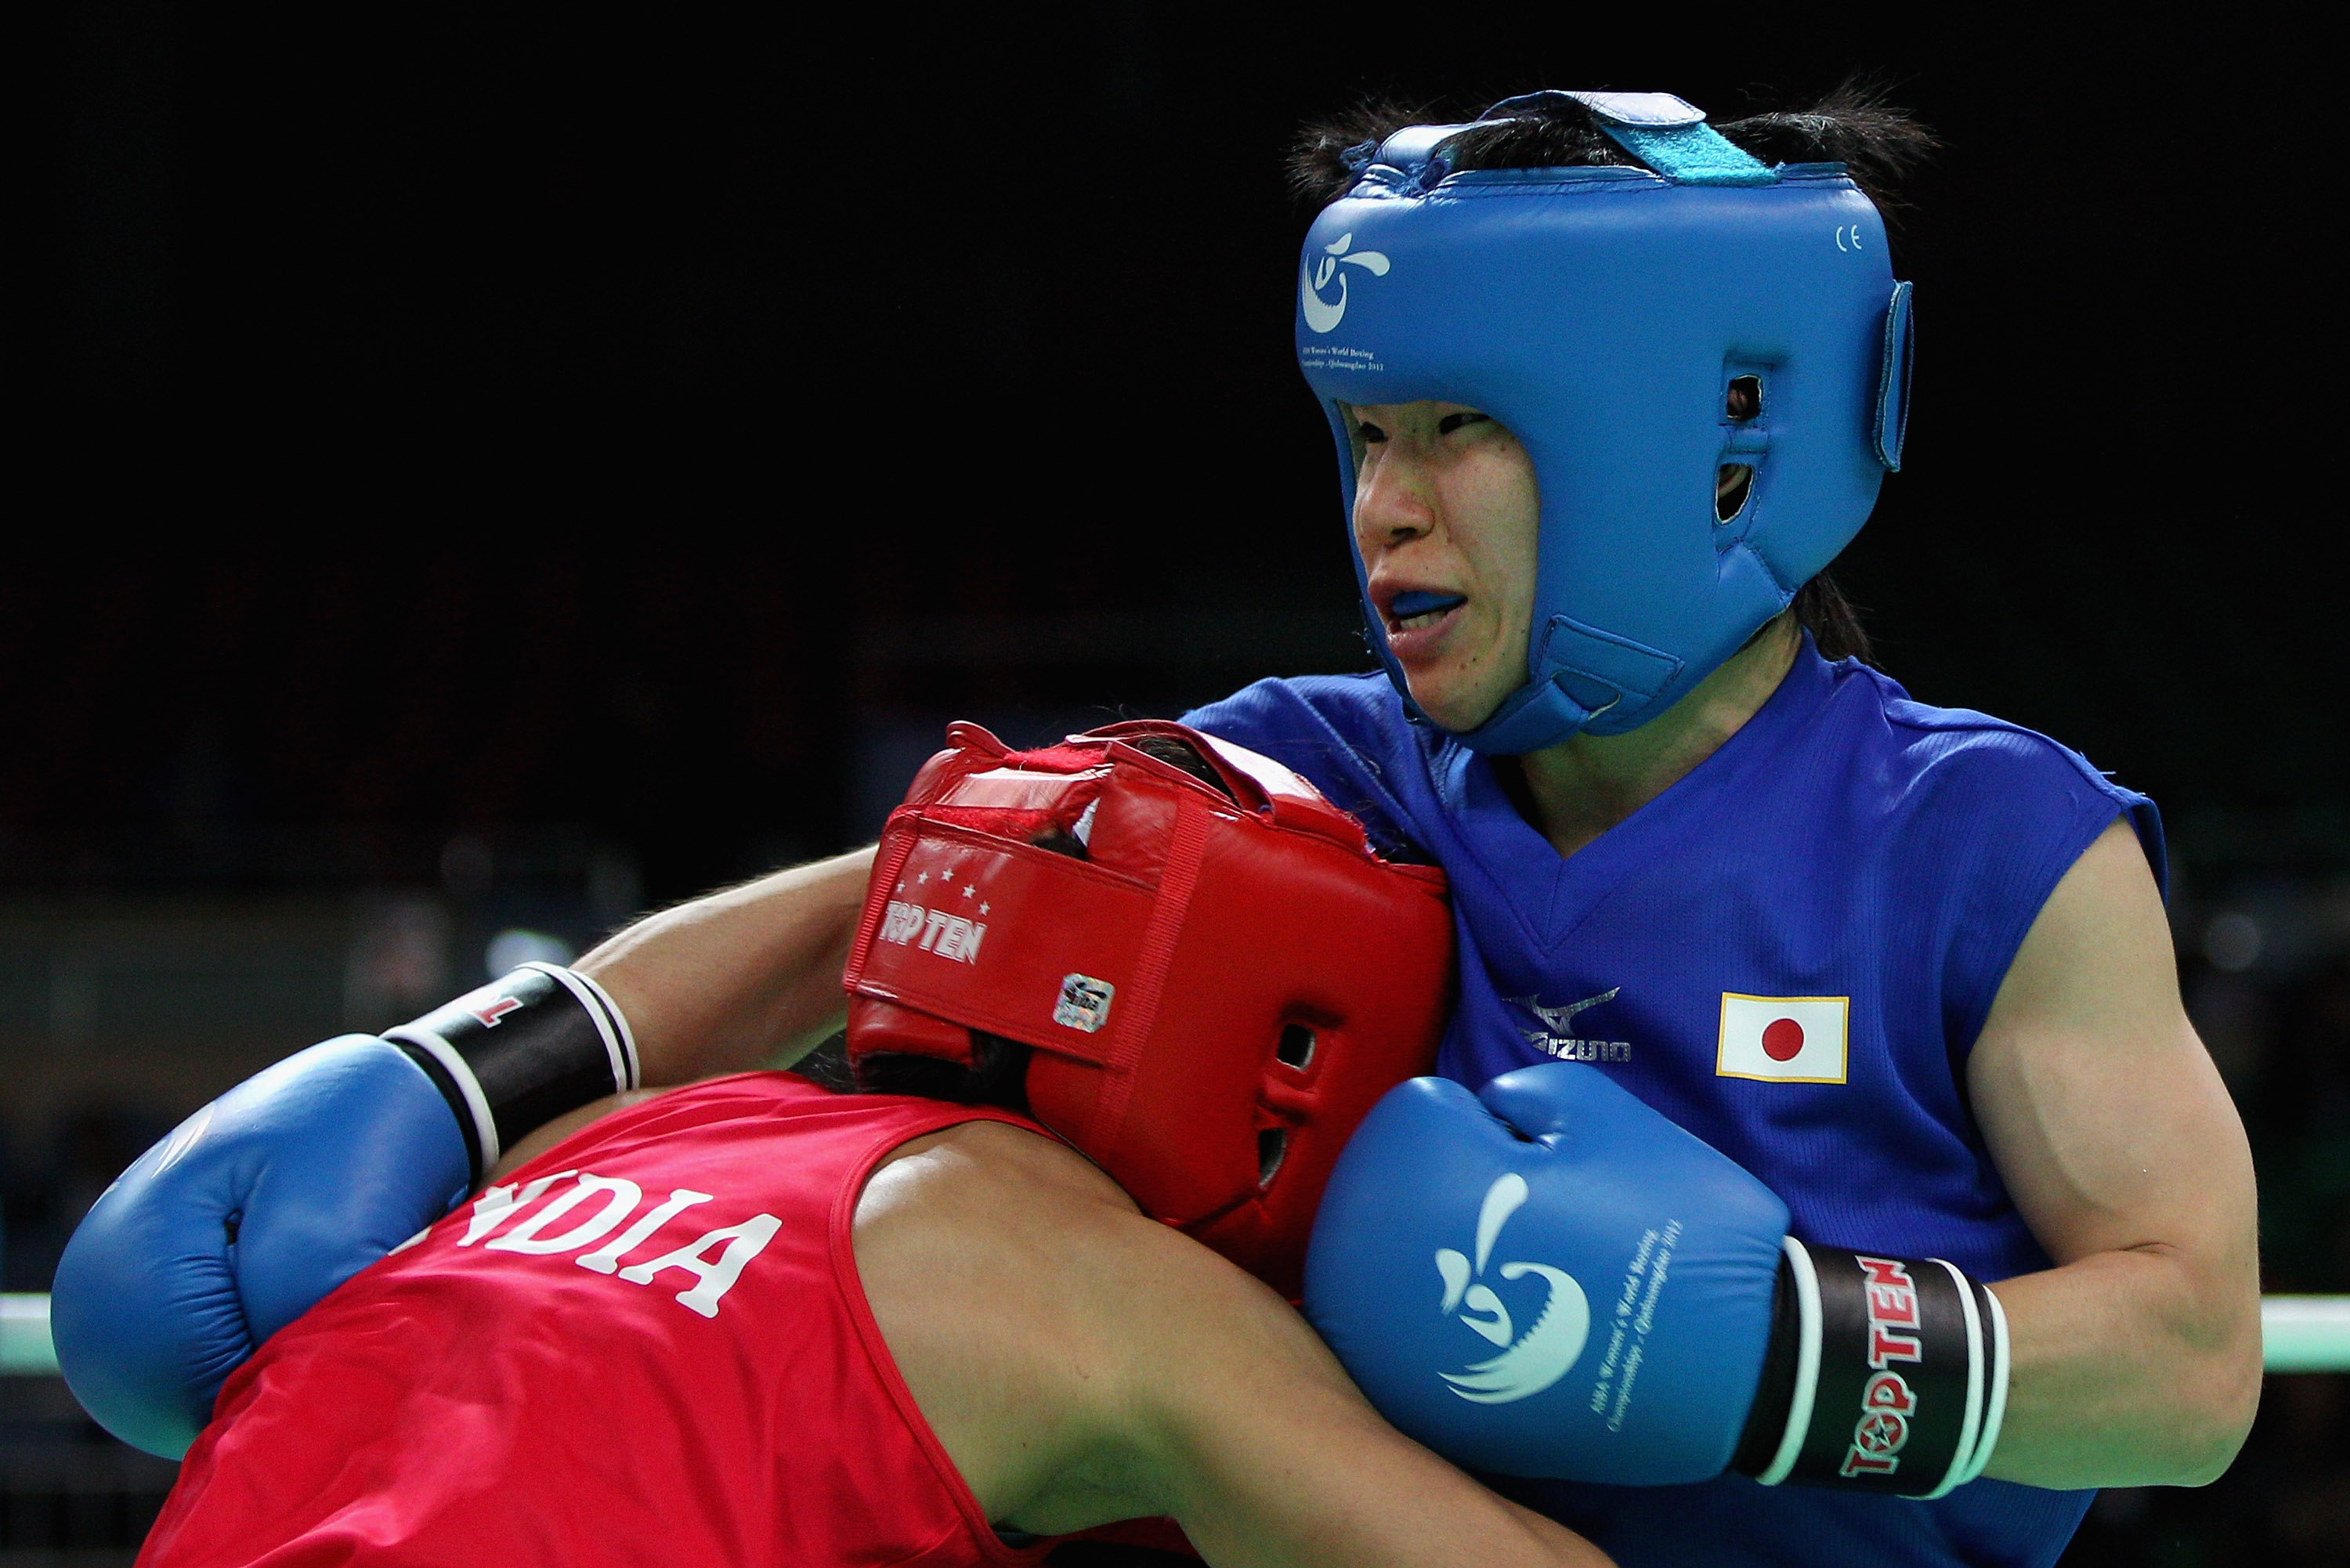 QINHUANGDAO, CHINA - MAY 13: Ayako Minowa (Red) of Japan fights against Mery Kom Hmangte (Blue) of India in the Women's 51kg preliminary match during the AIBA Women's World Boxing Championships on May 13, 2012 in Qinhuangdao, China. The AIBA Women's World Boxing Championships 2012 which is a London Olympic Games Qualifying Event will be held from May 11 to 19. (Photo by Feng Li/Getty Images)